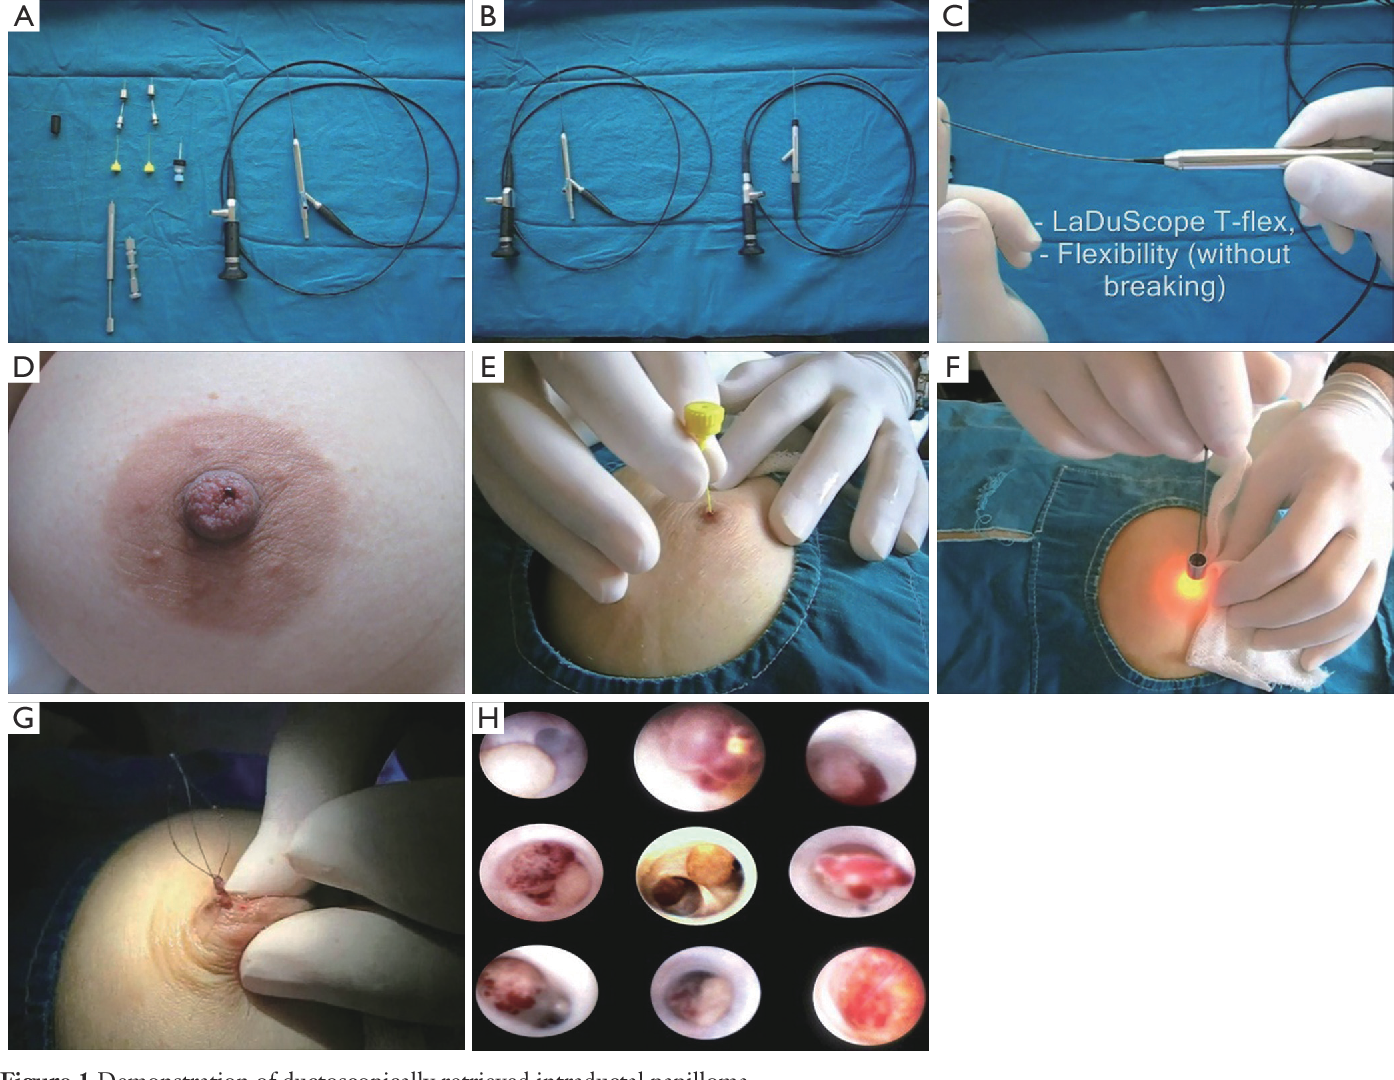 treatment for intraductal papilloma)